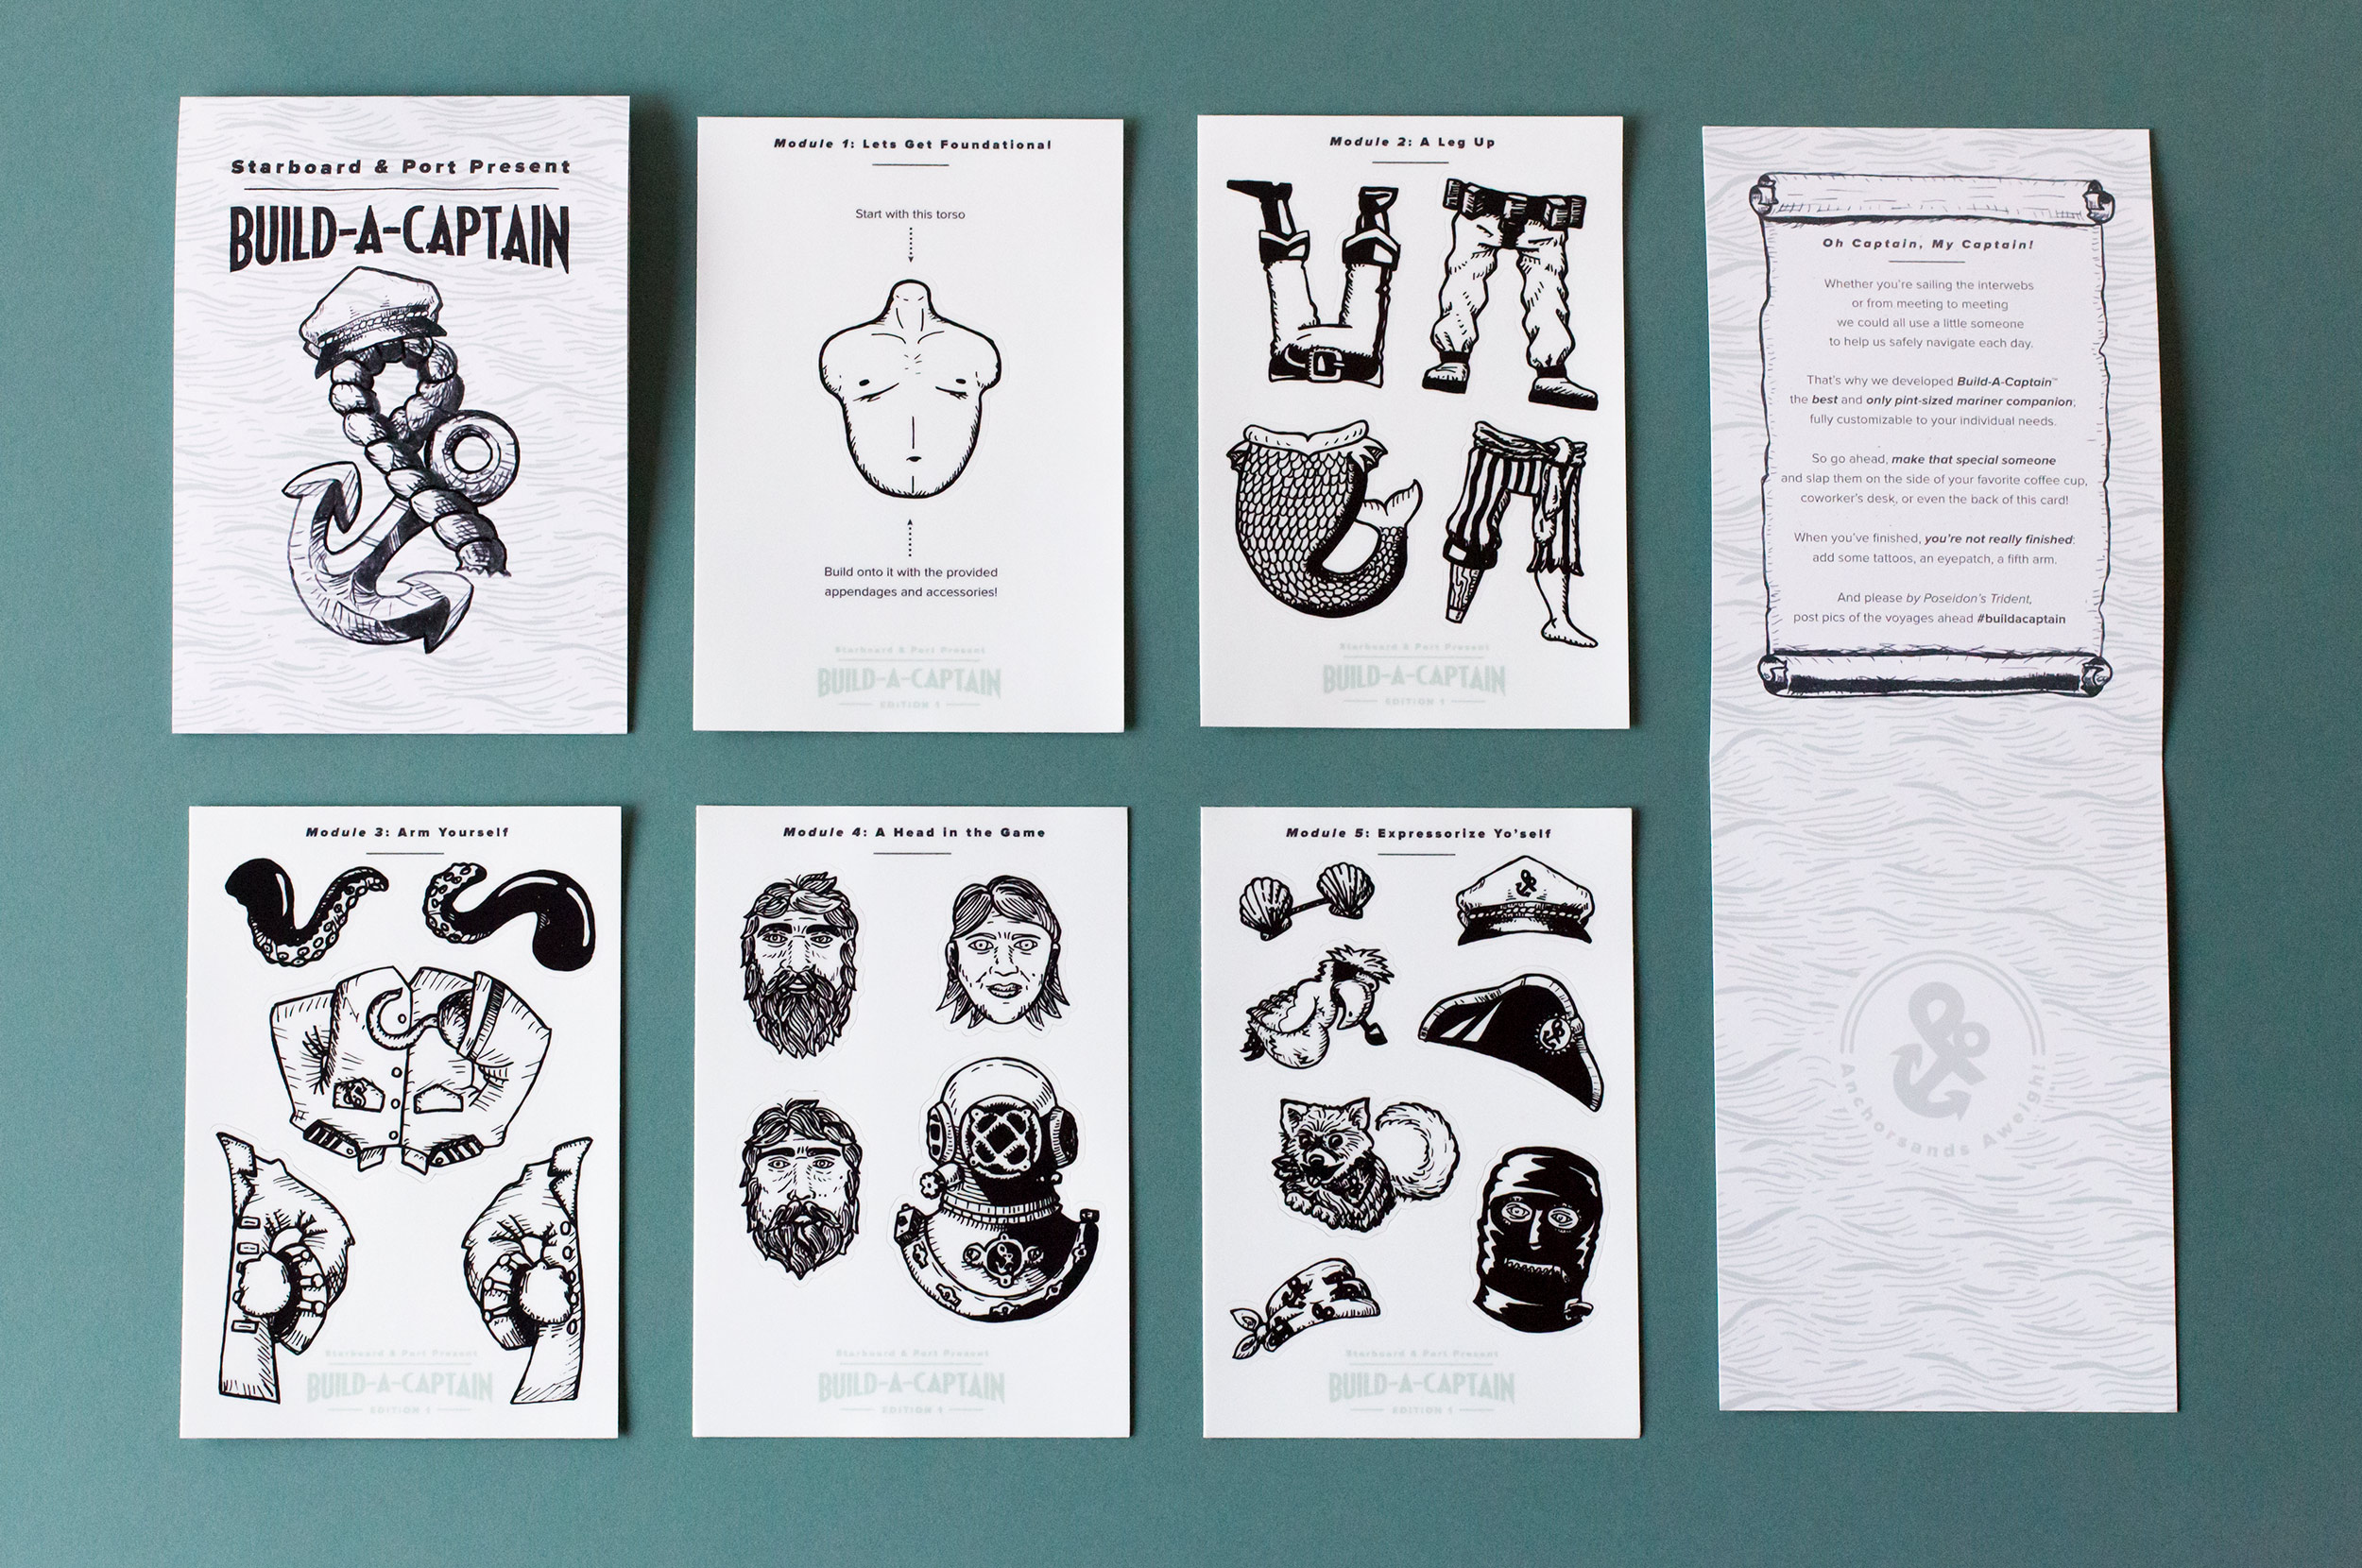 Build-A-Captain Sticker Sheets for Starboard & Port Promo